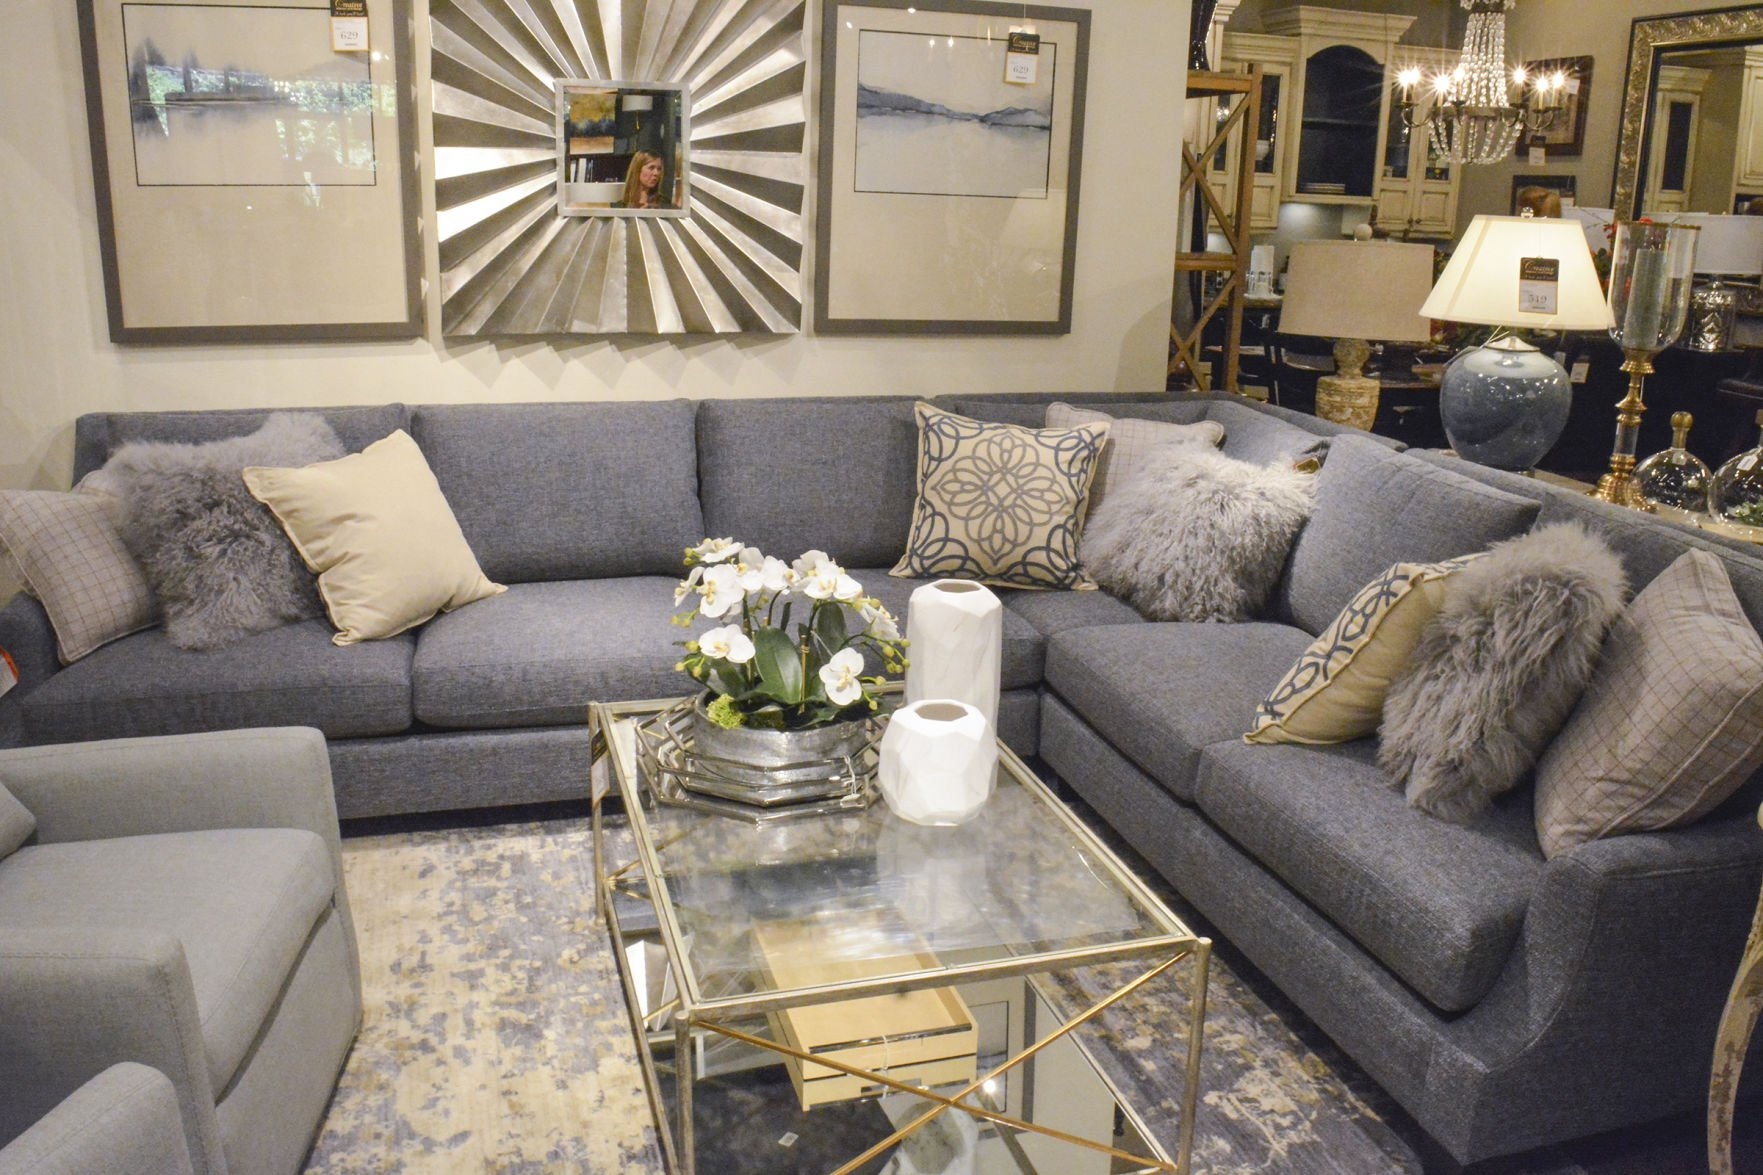 According To Interior Designers At Creative Interiors And Design In Brush  Prairie, Non Neutral Colors, Such As Blue, Are Coming Back Into Style.